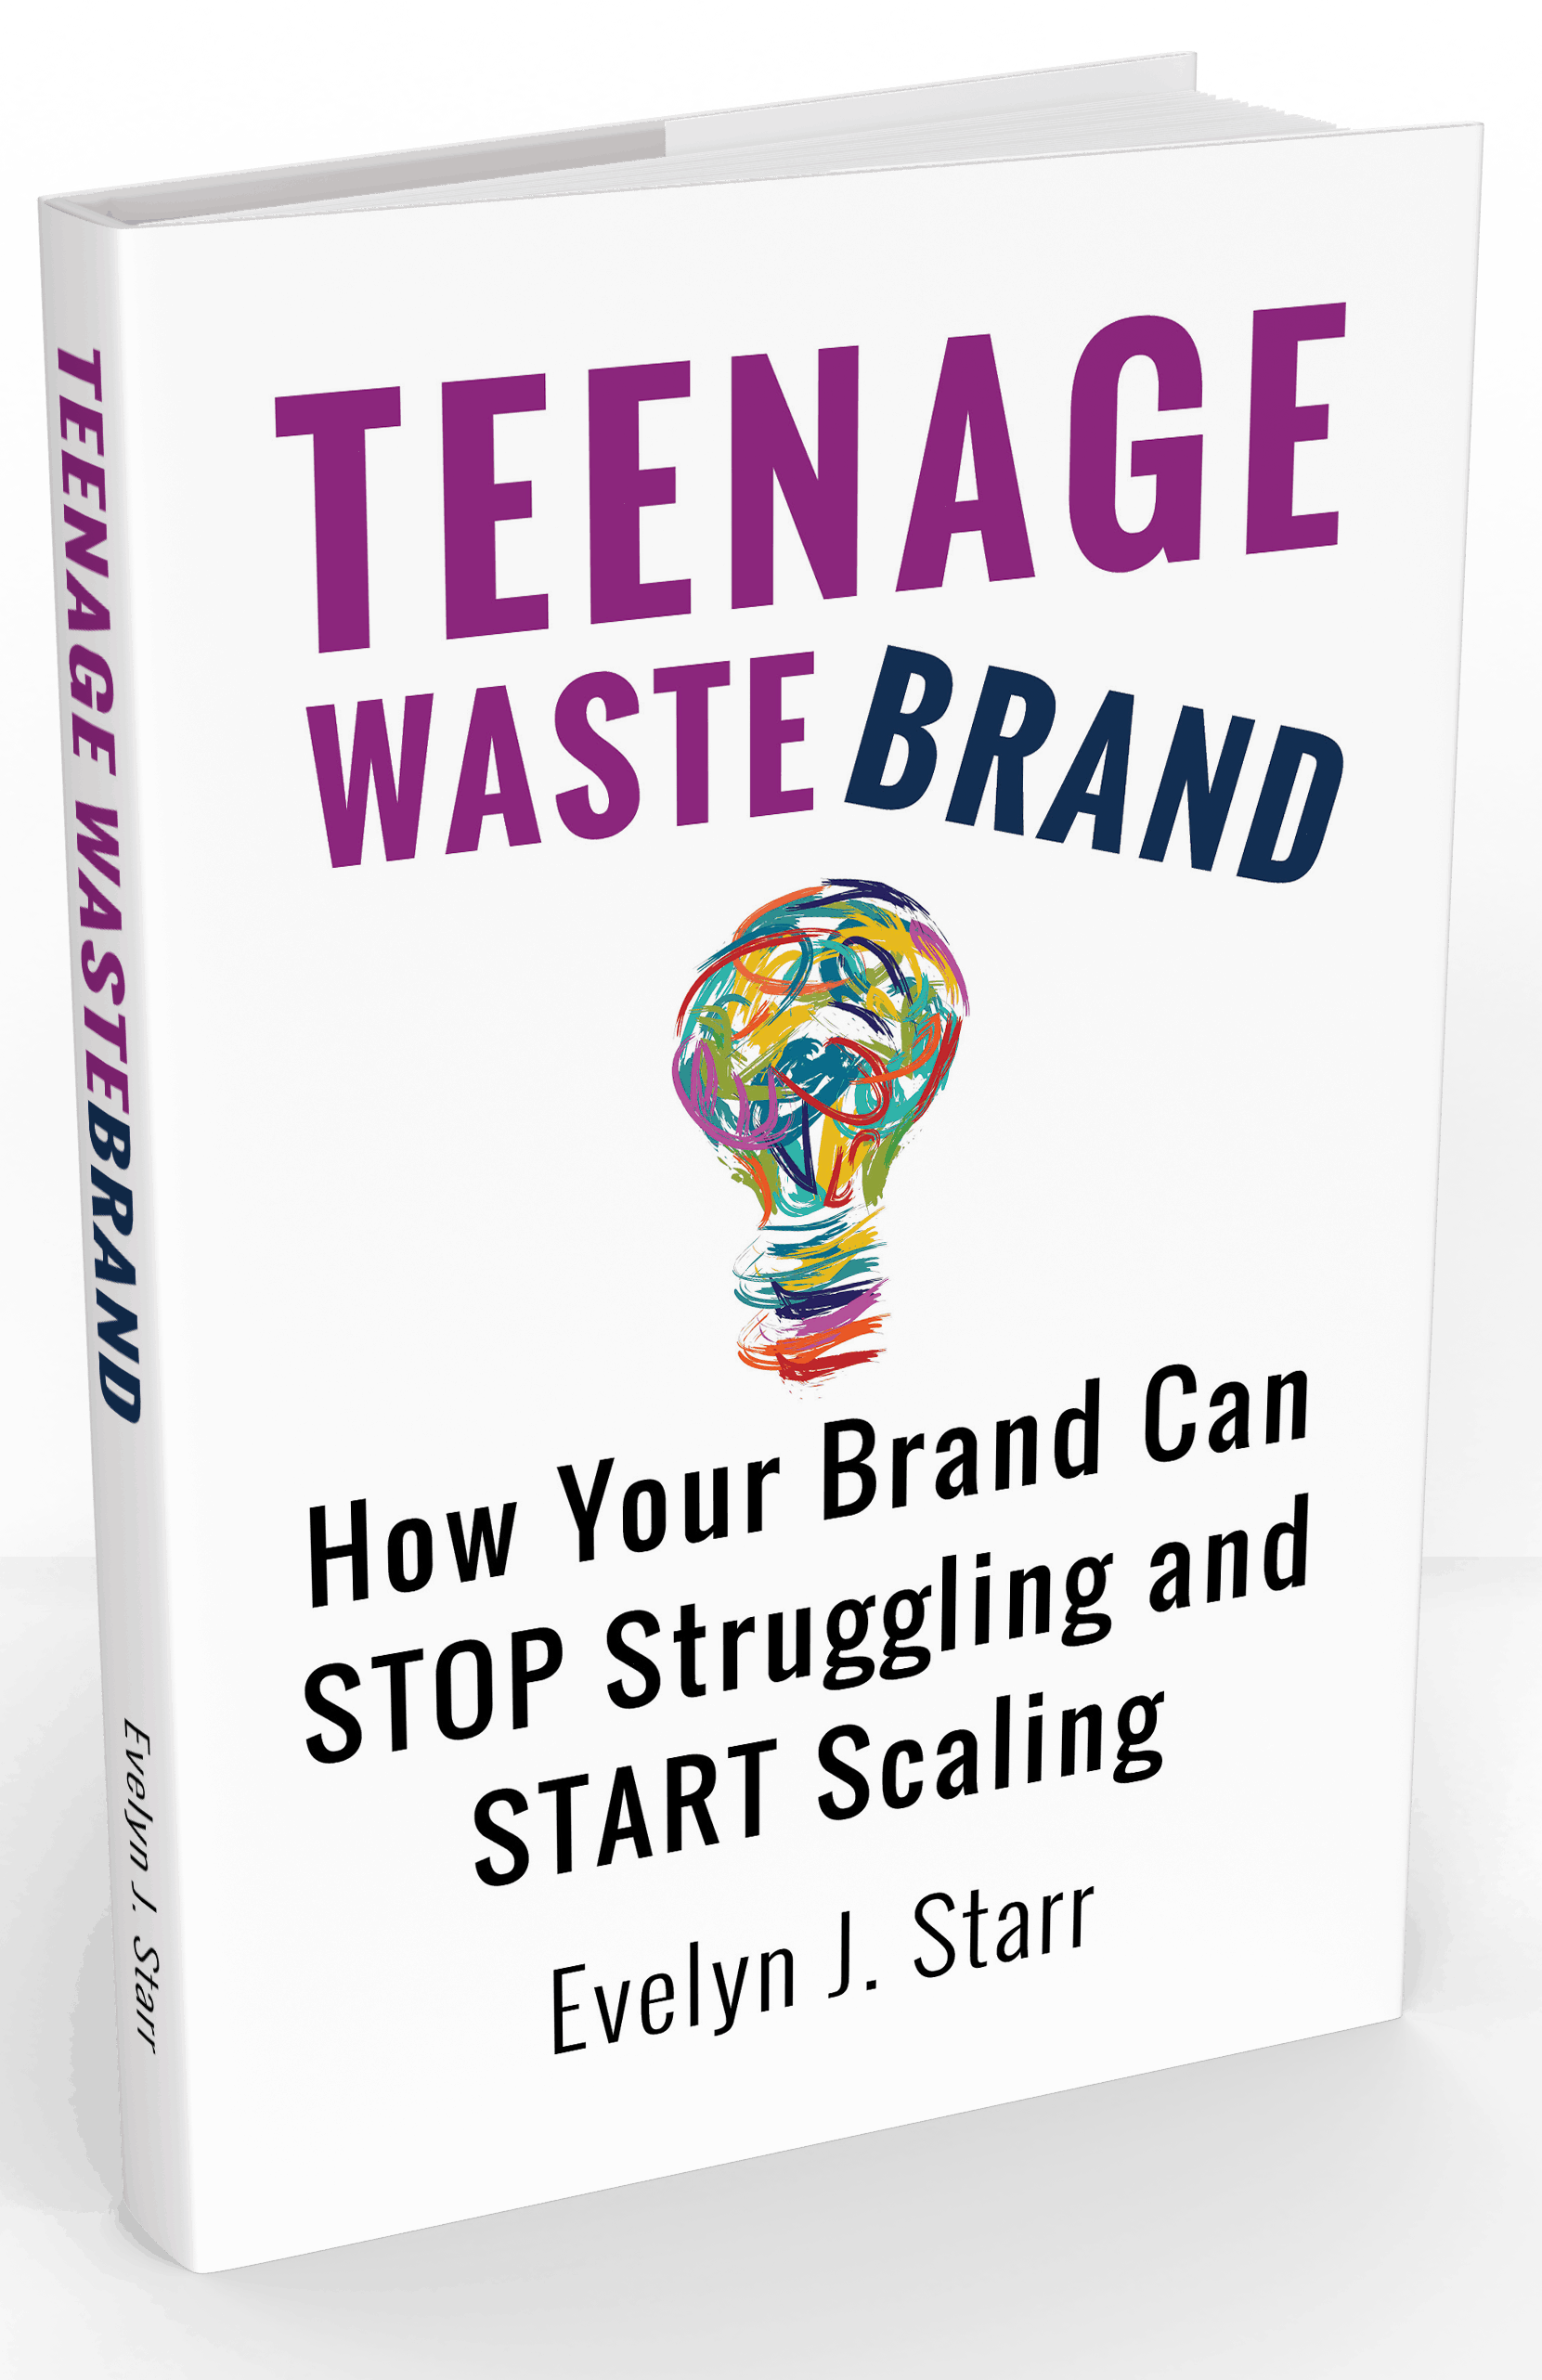 Teenage Wastebrand book cover